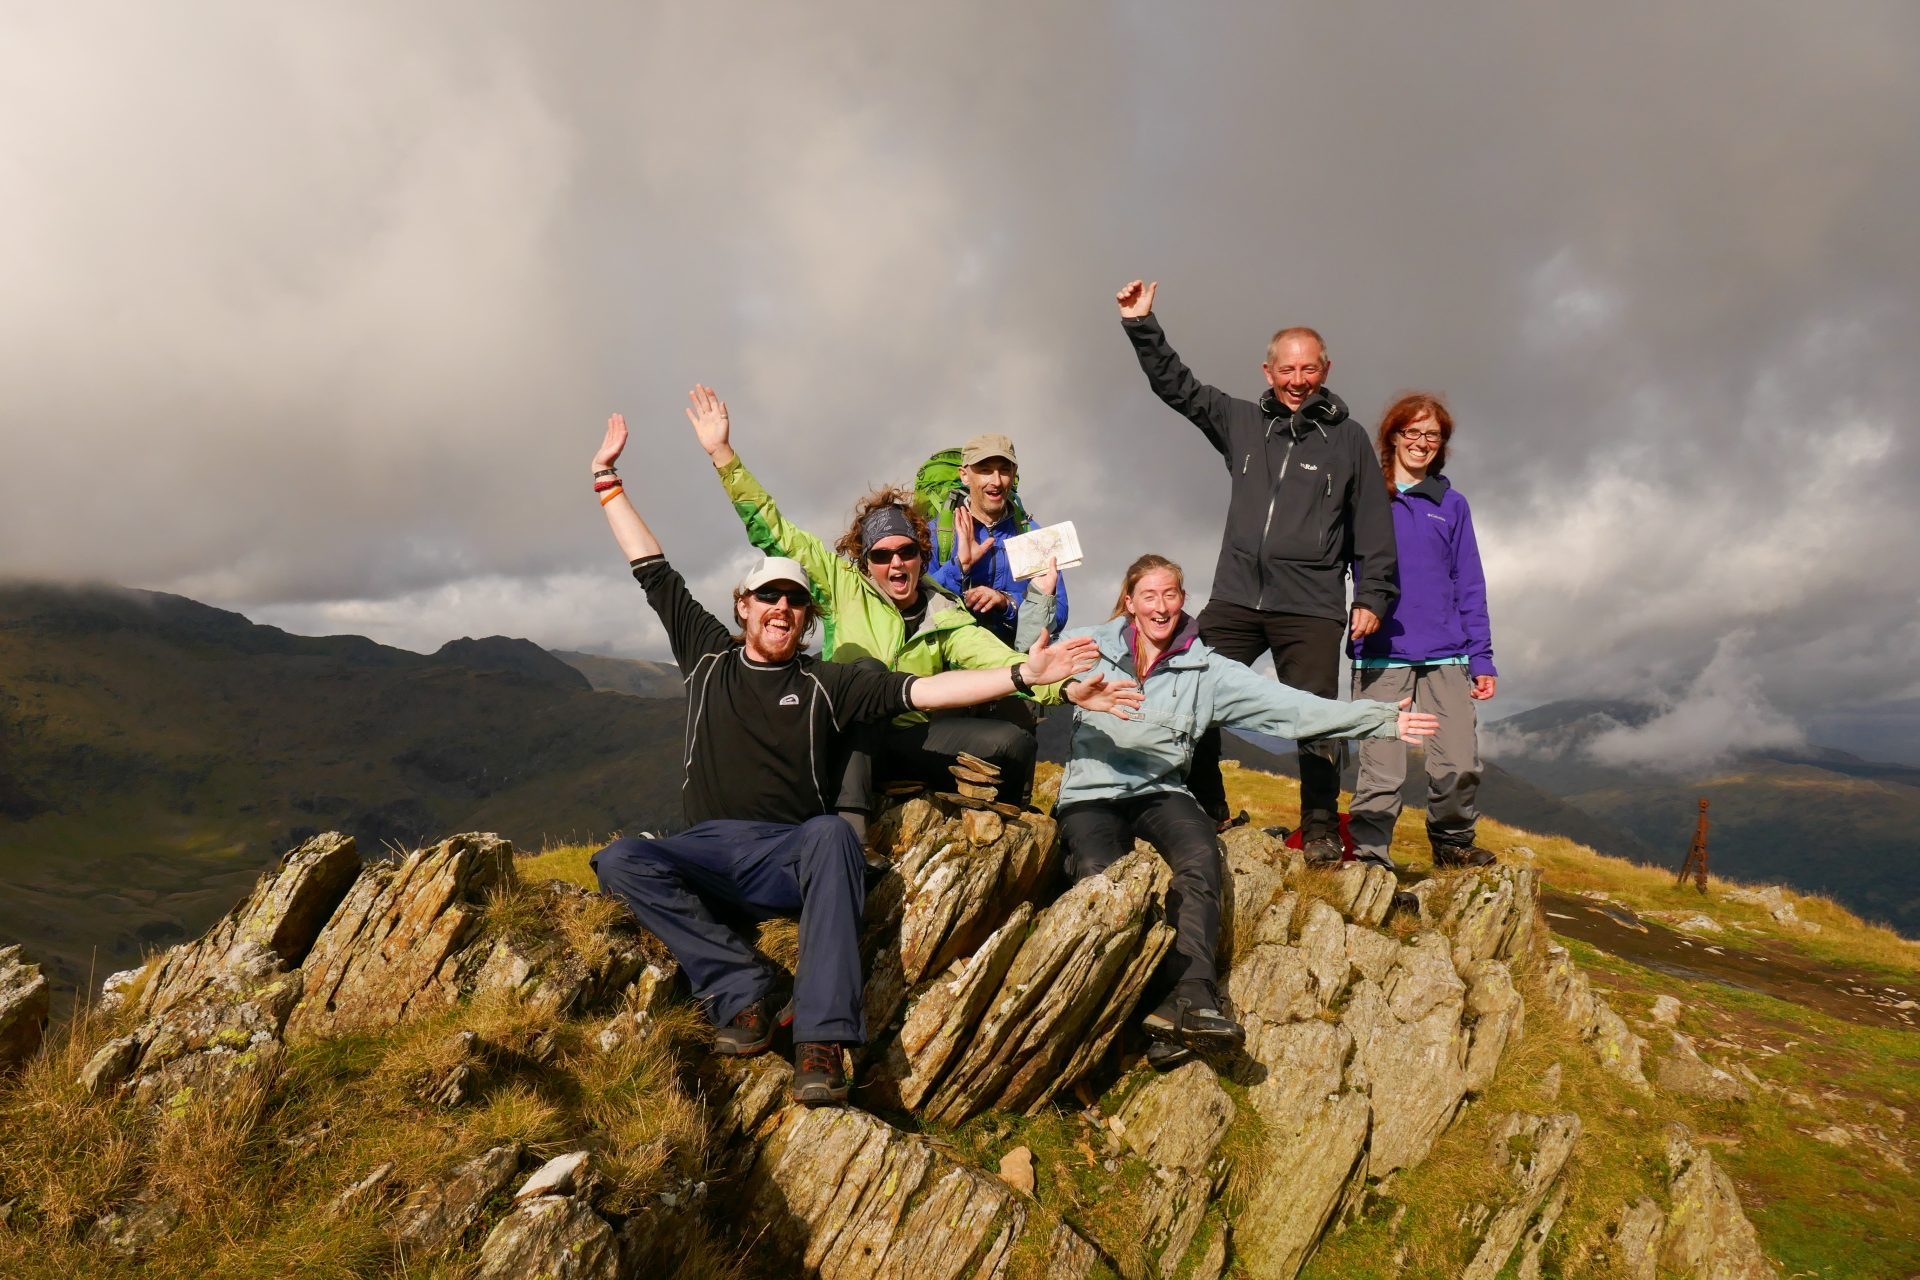 Join us in Snowdonia to learn the route choice and navigation skills needed to enjoy your own mountain journeys.